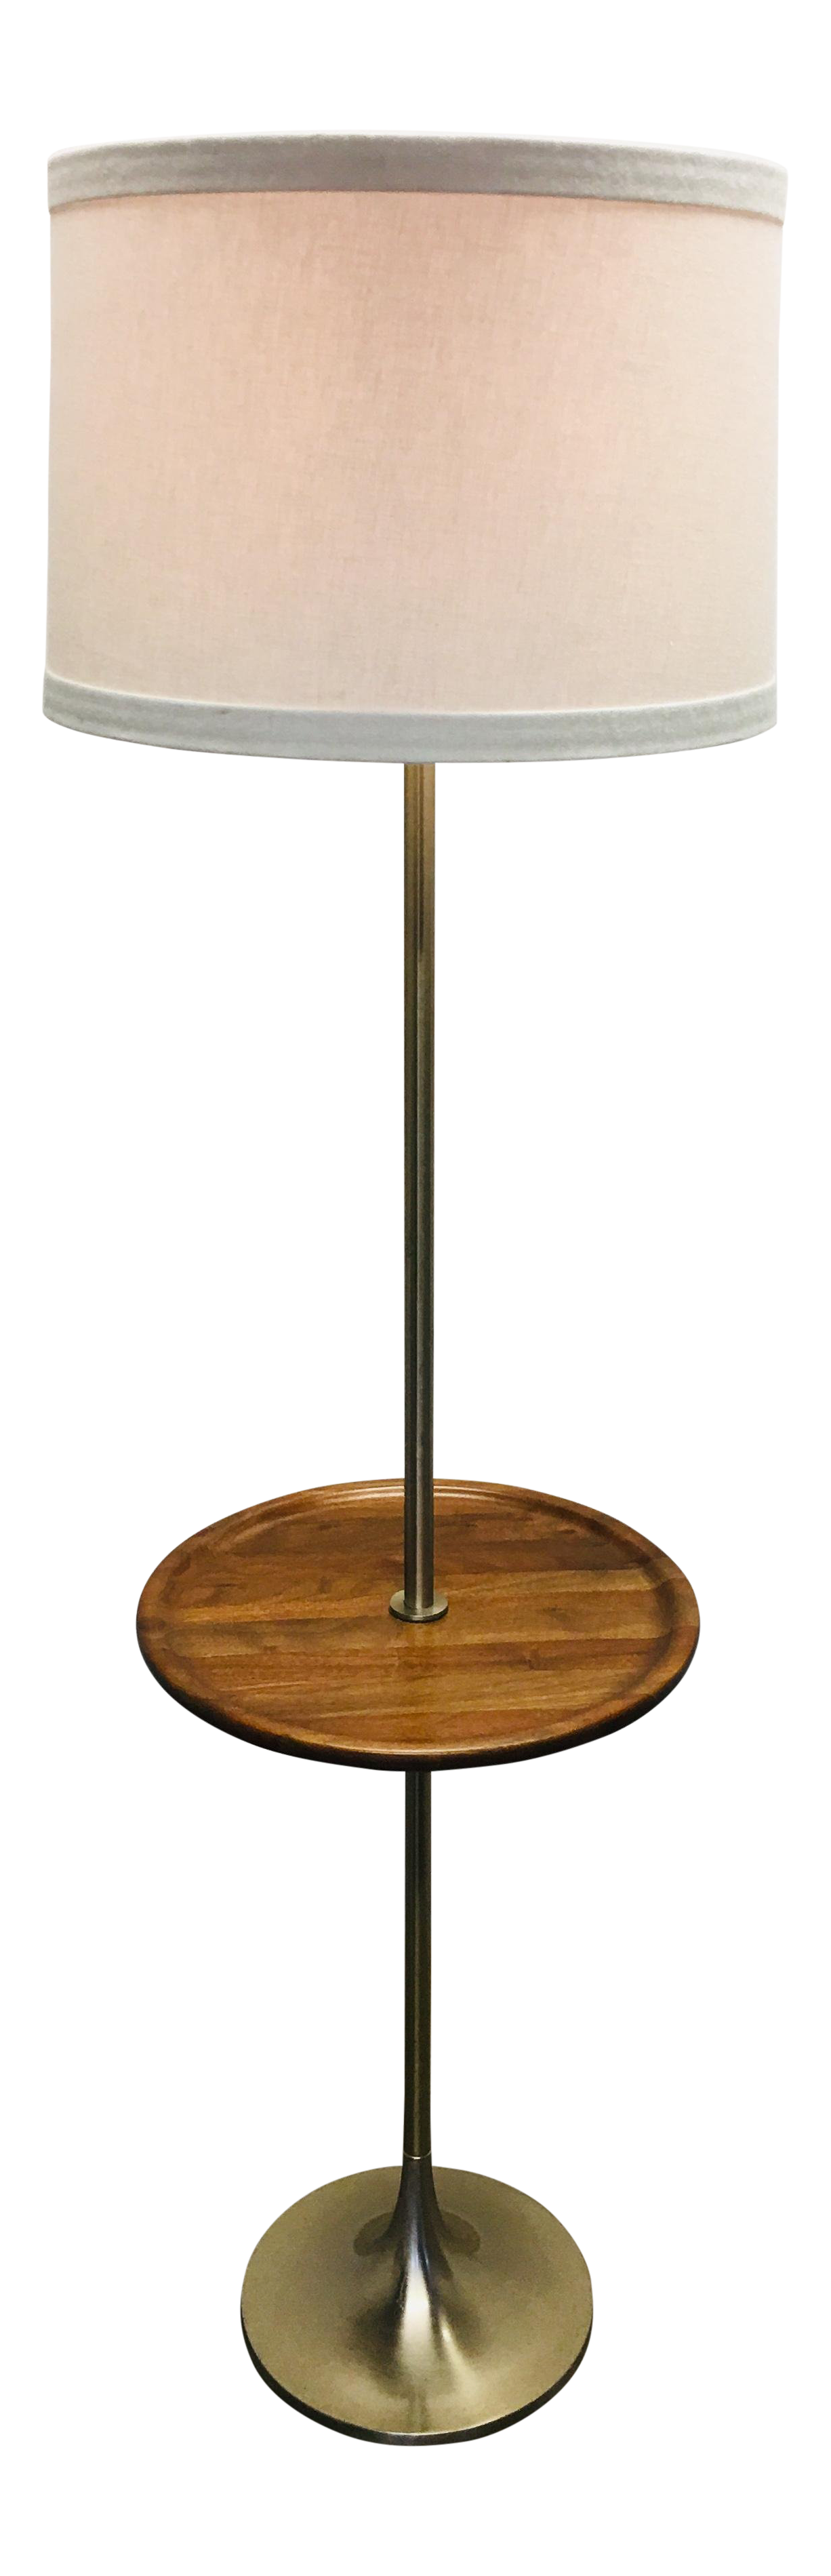 Vintage Laurel Floor Lamp W Walnut Table Brushed Chrome Mid Century